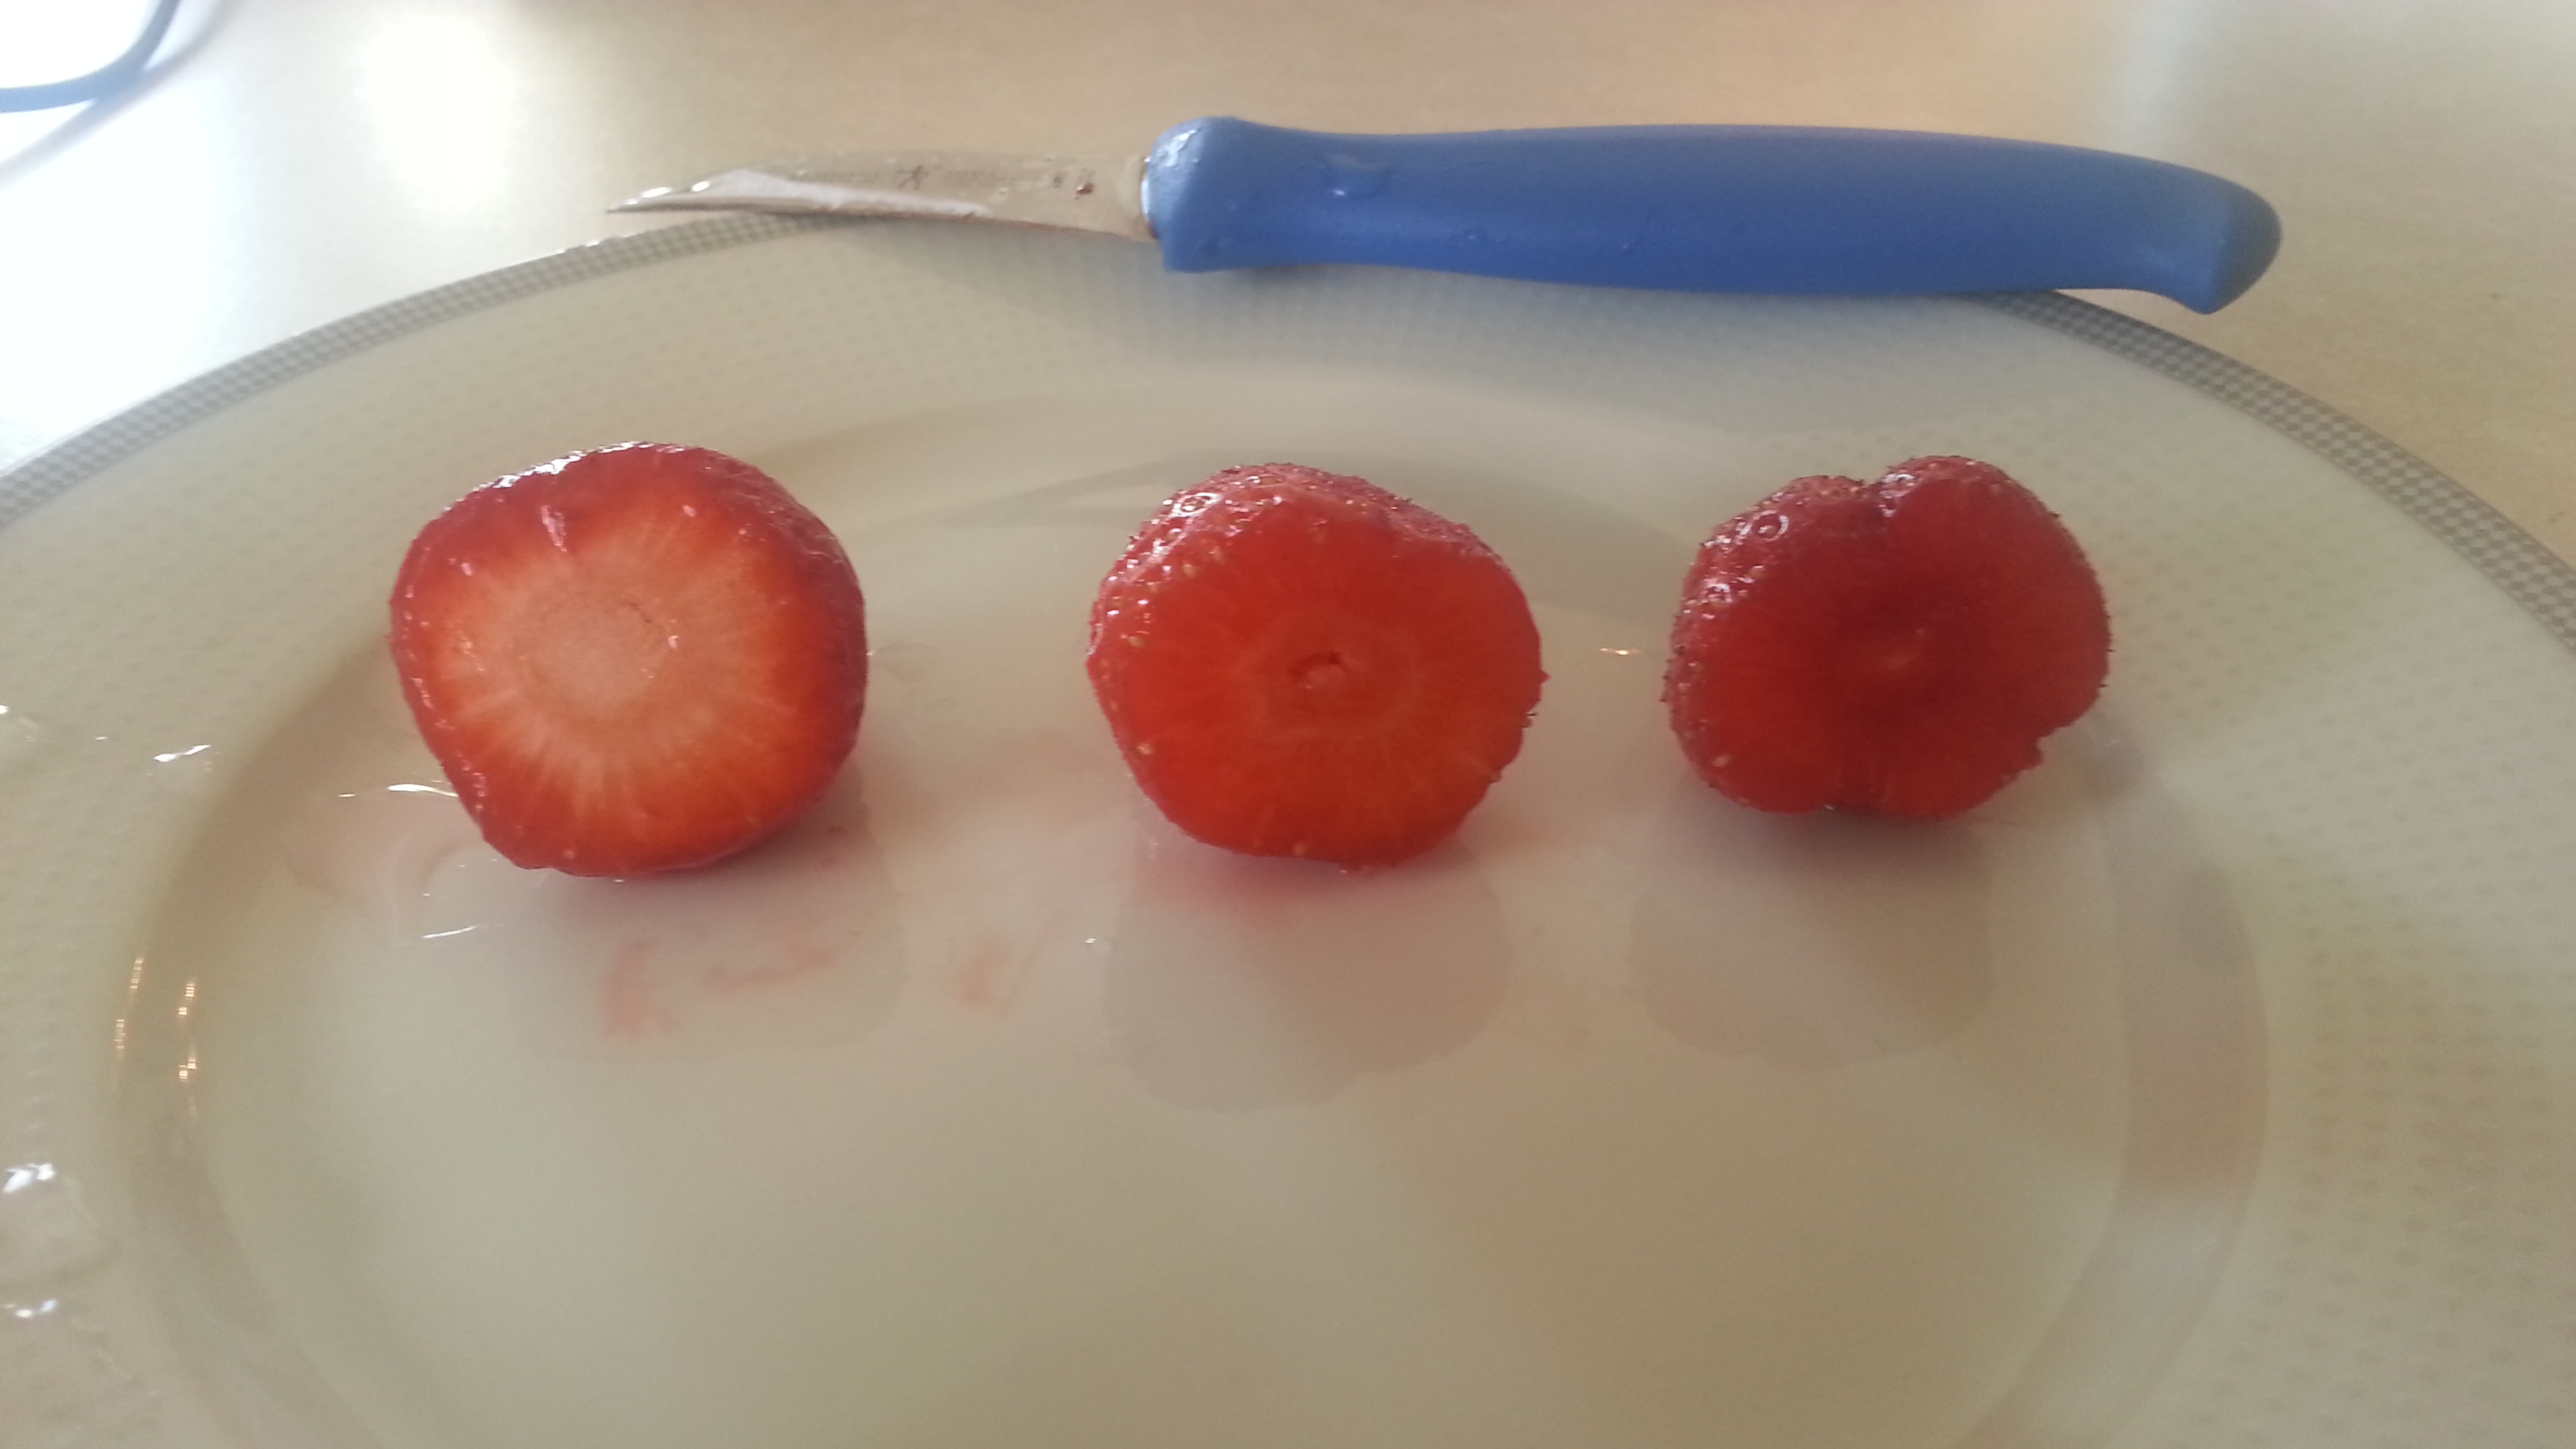 Homegrown vs Store Bought  Strawberries - Cross Cut